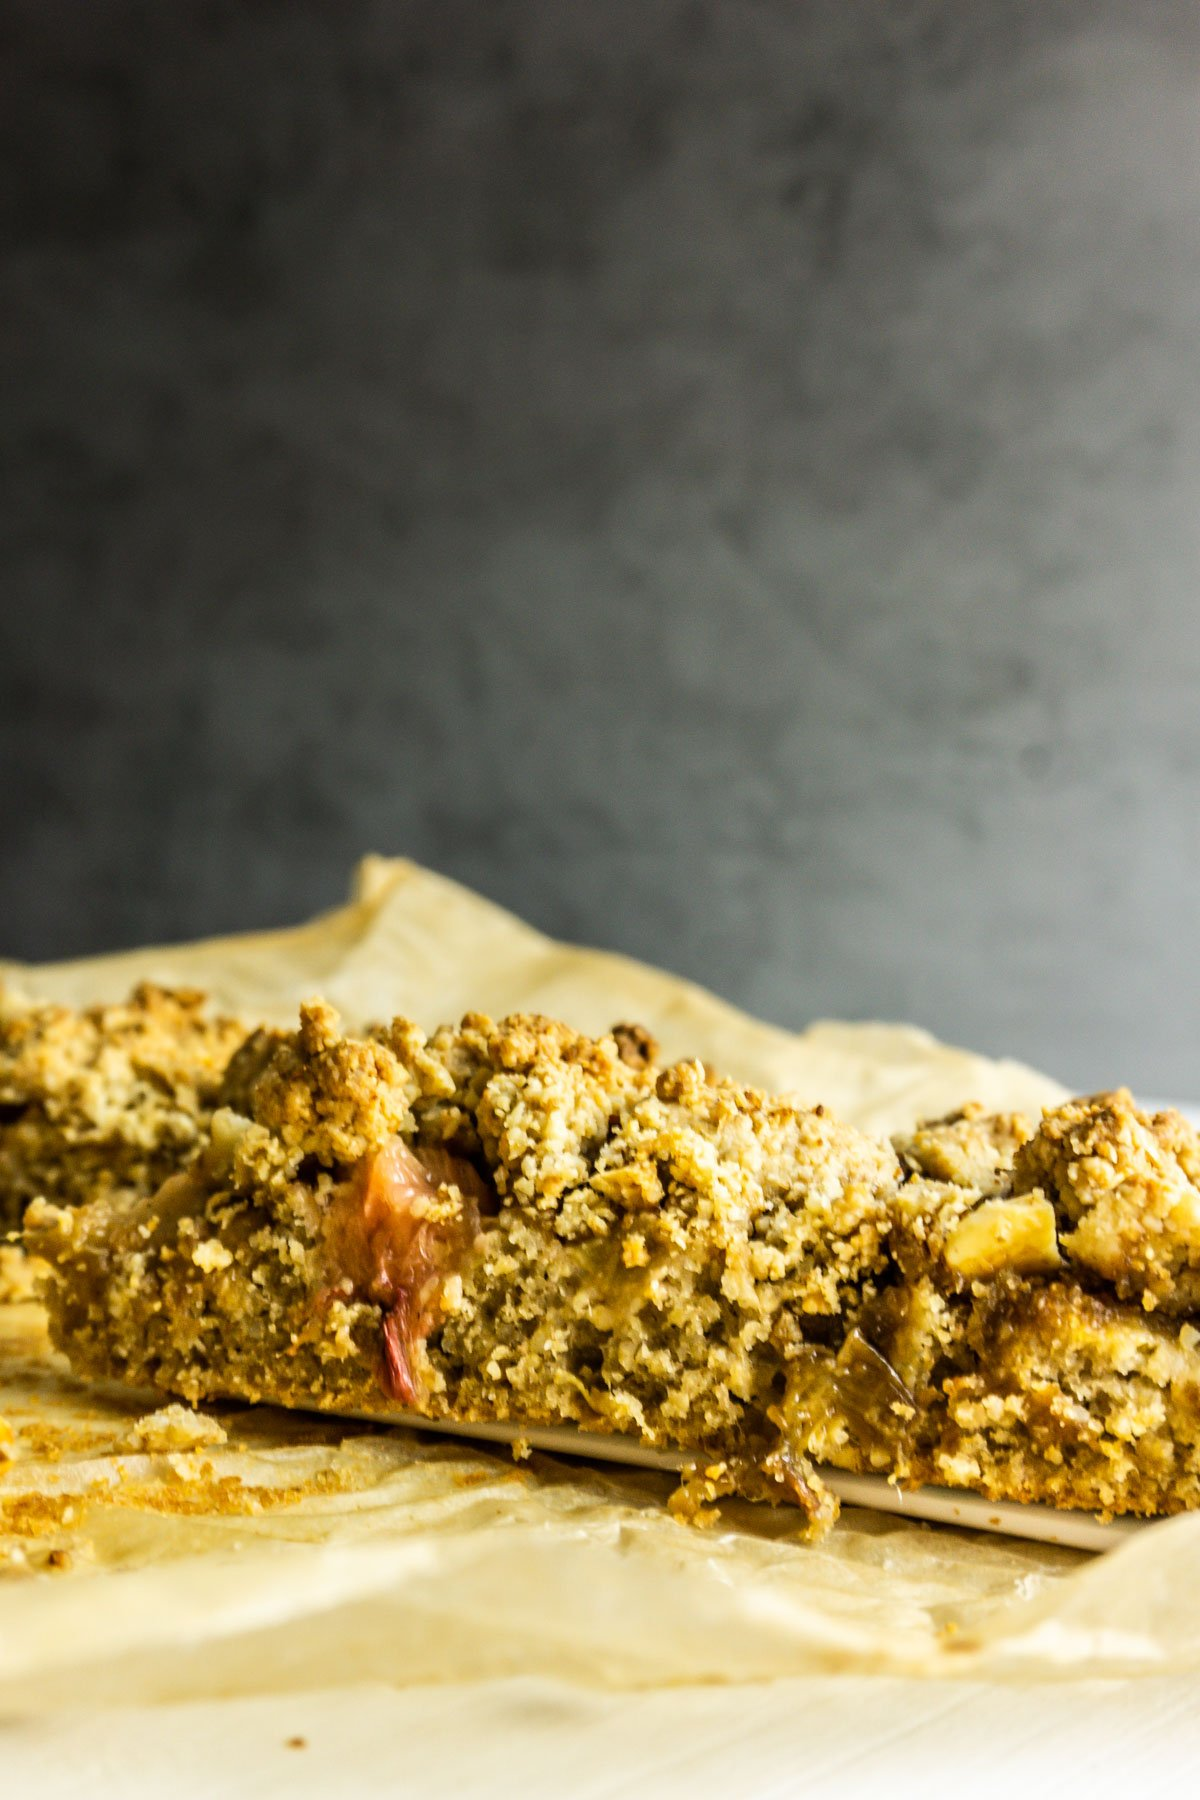 Rhubarb Streusel Cake on a white background